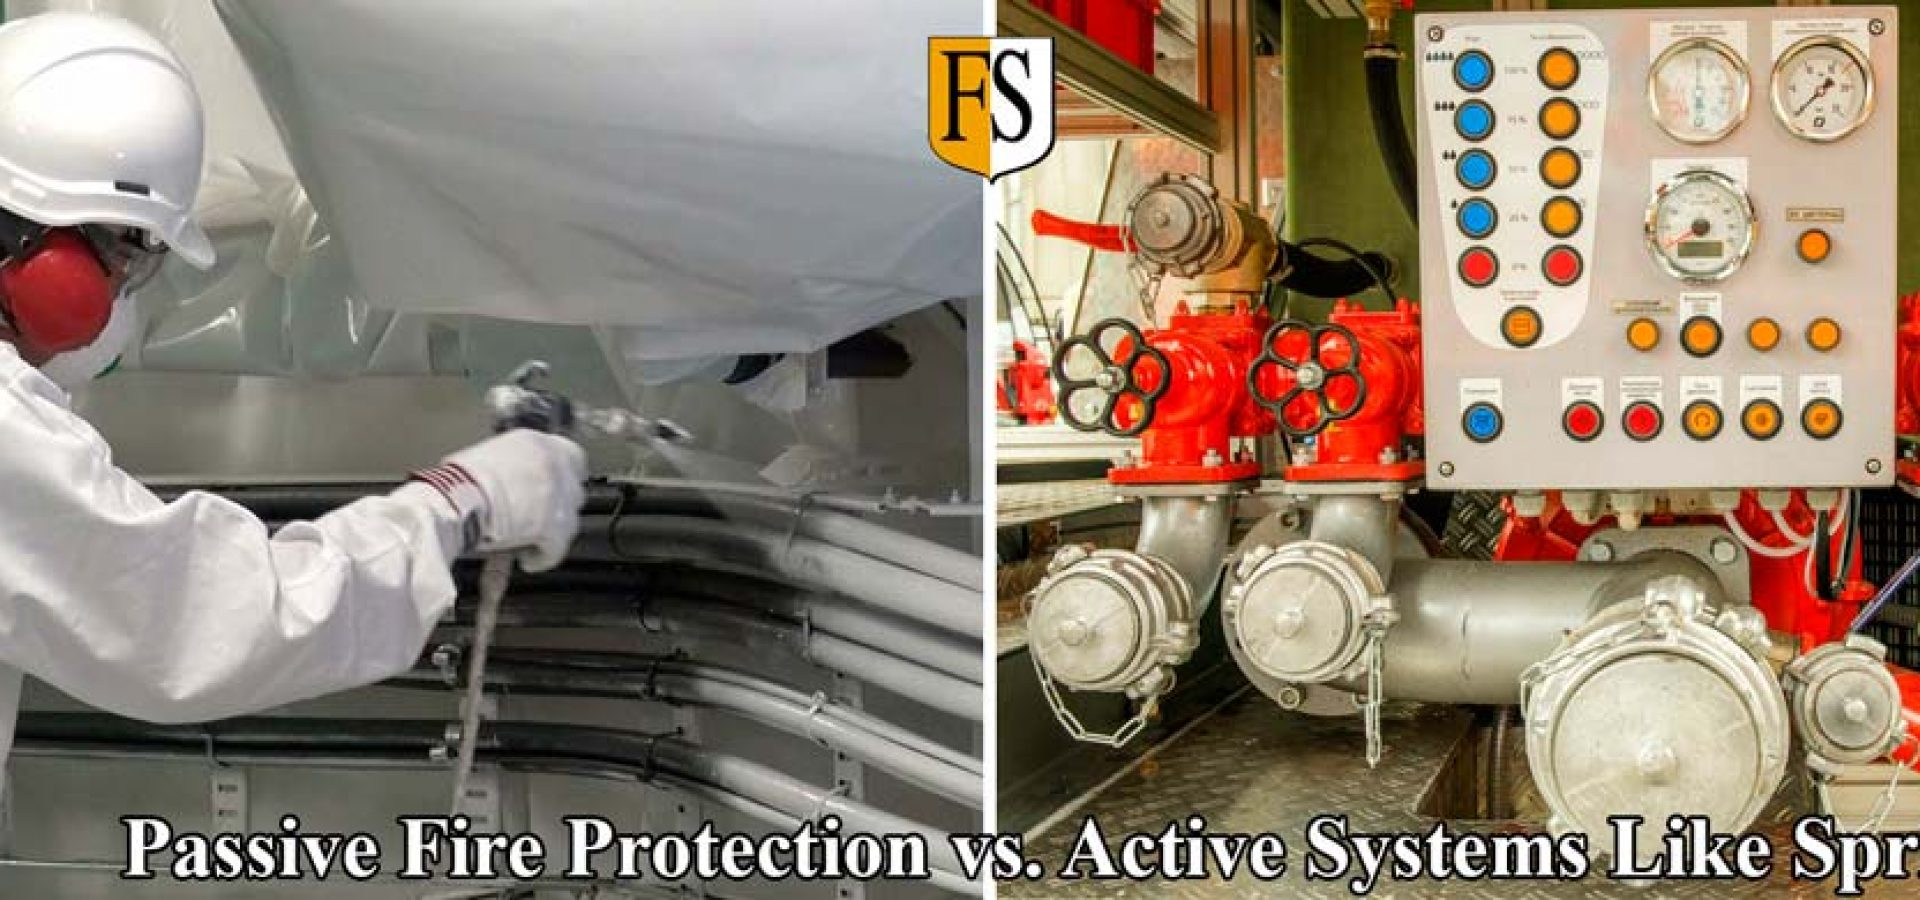 Passive Fire Protection System vs Active Fire Protection Systems like Sprinklers